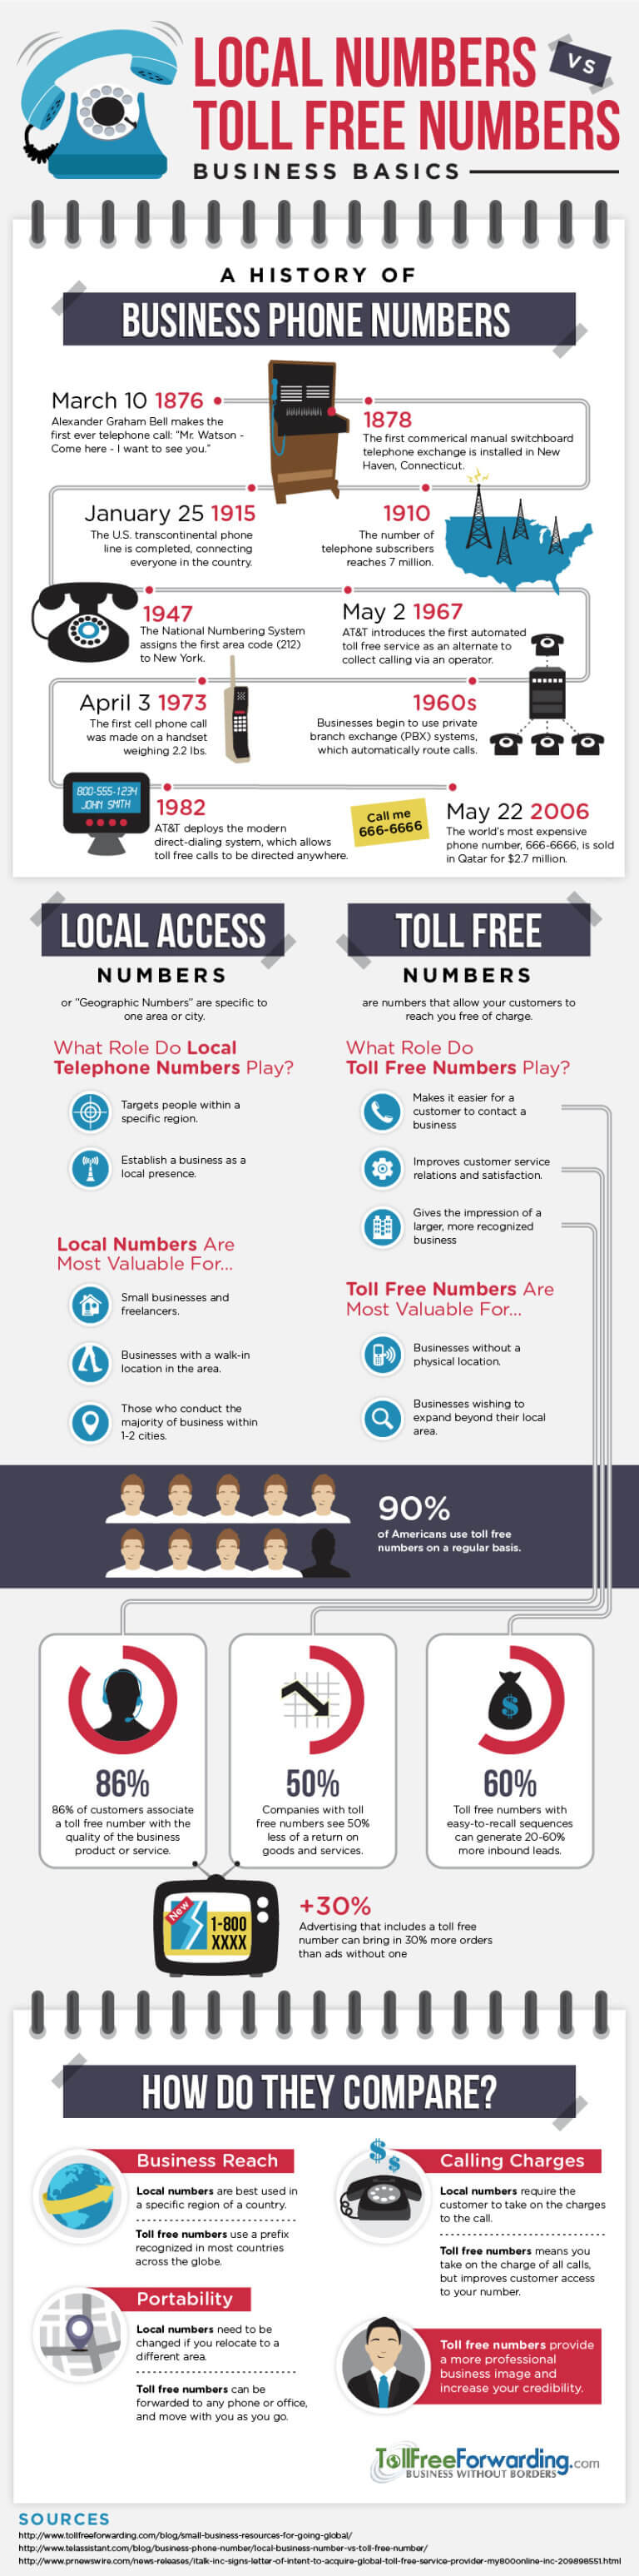 Toll Free vs Local Numbers: Business Basics for Your Virtual Phone Service